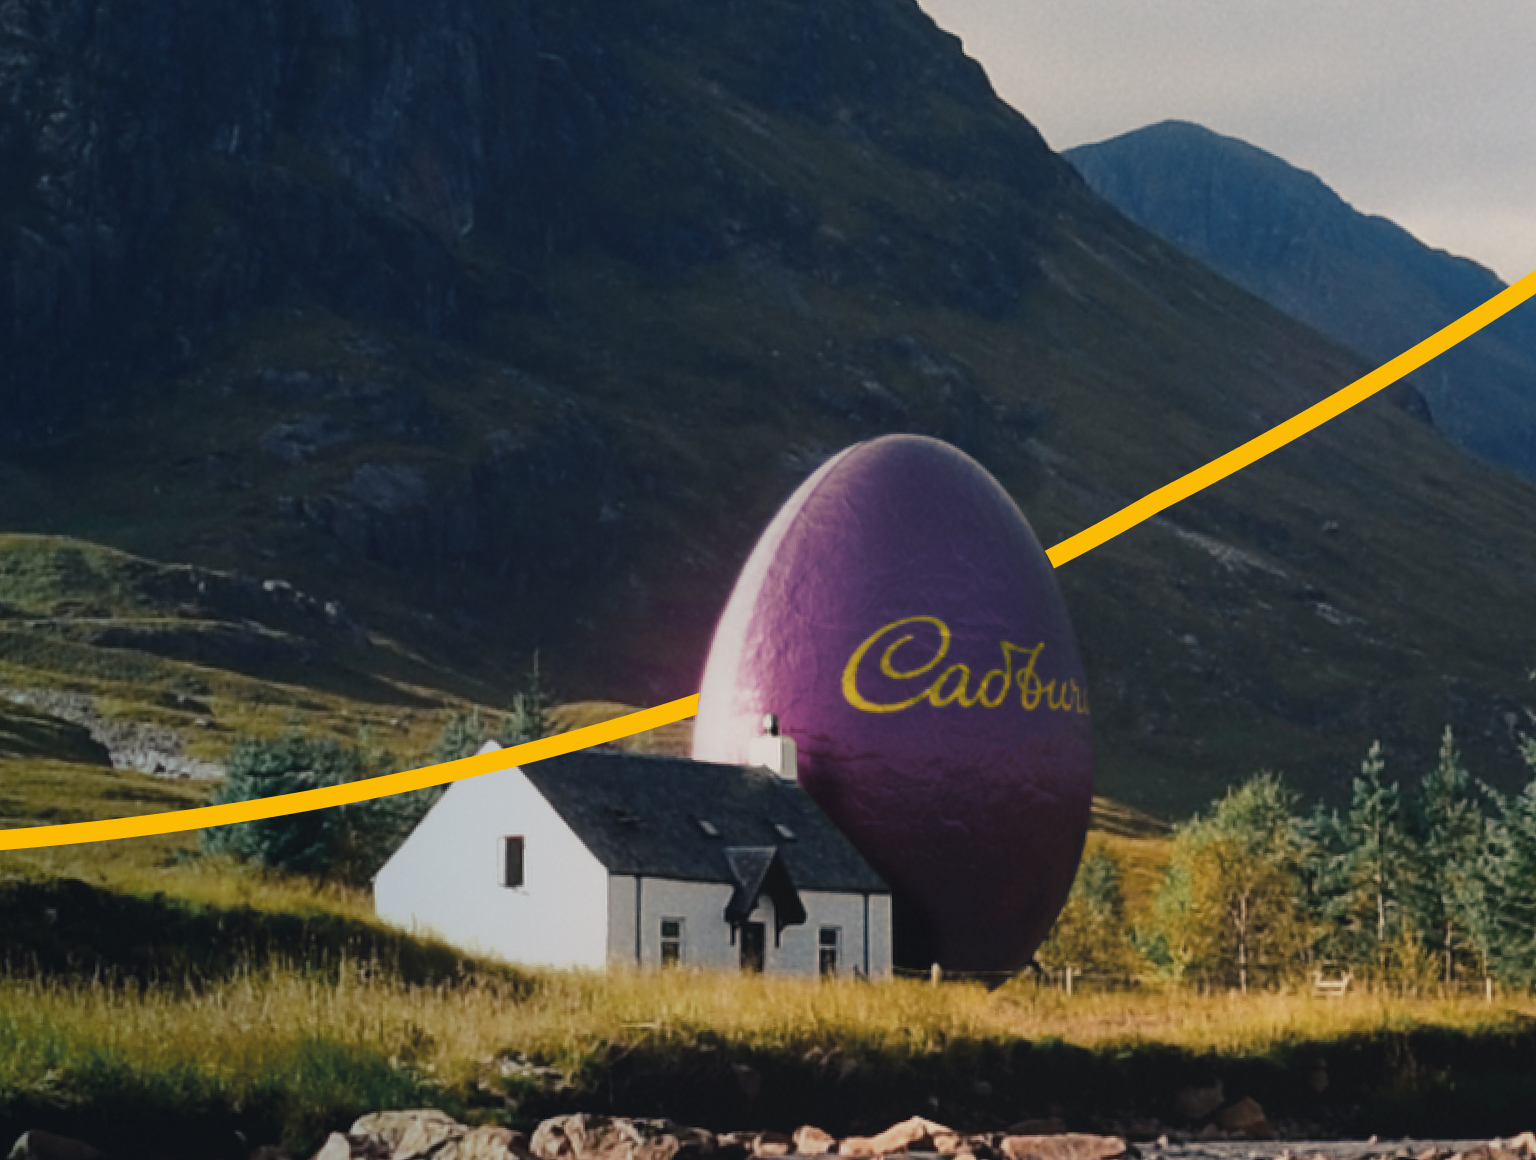 A gigantic Cadbury Egg next to a house in the countryside